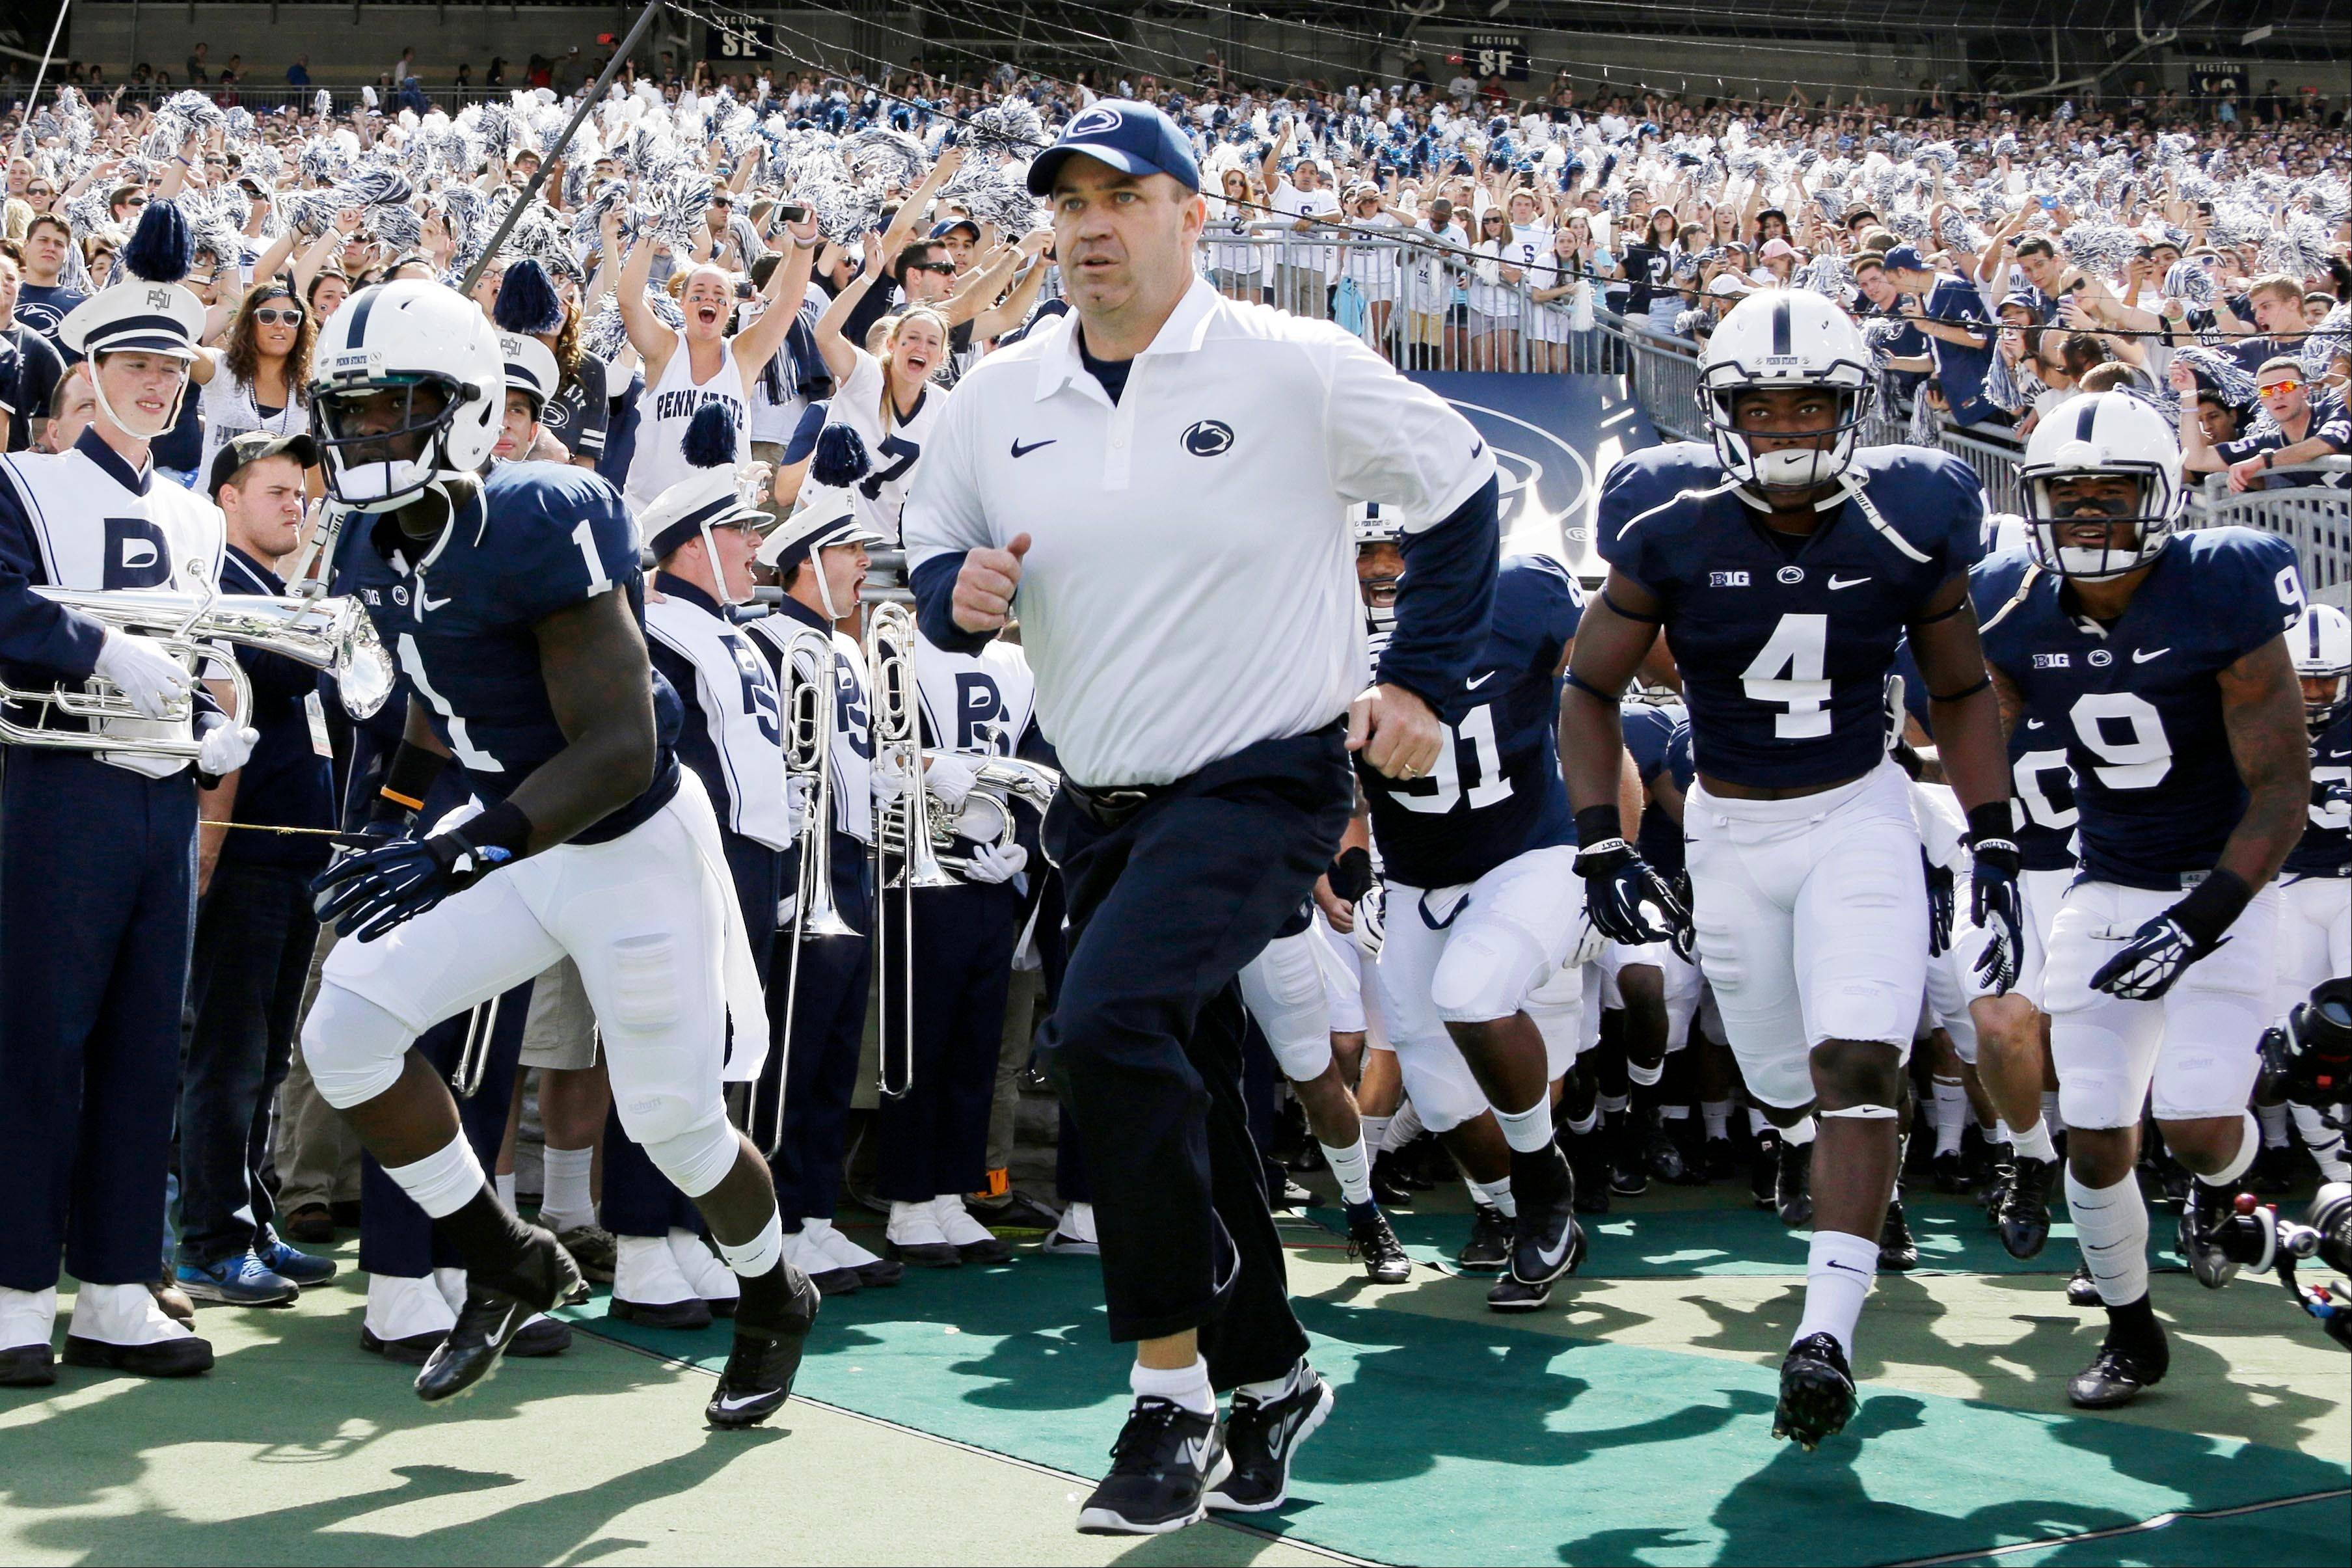 Penn State head coach Bill O� Brien leads his team onto the field at Beaver Stadium for a Sept. 7 game against Eastern Michigan in State College, Pa. The Nittany Lions have had two years of modified success under O�Brien.